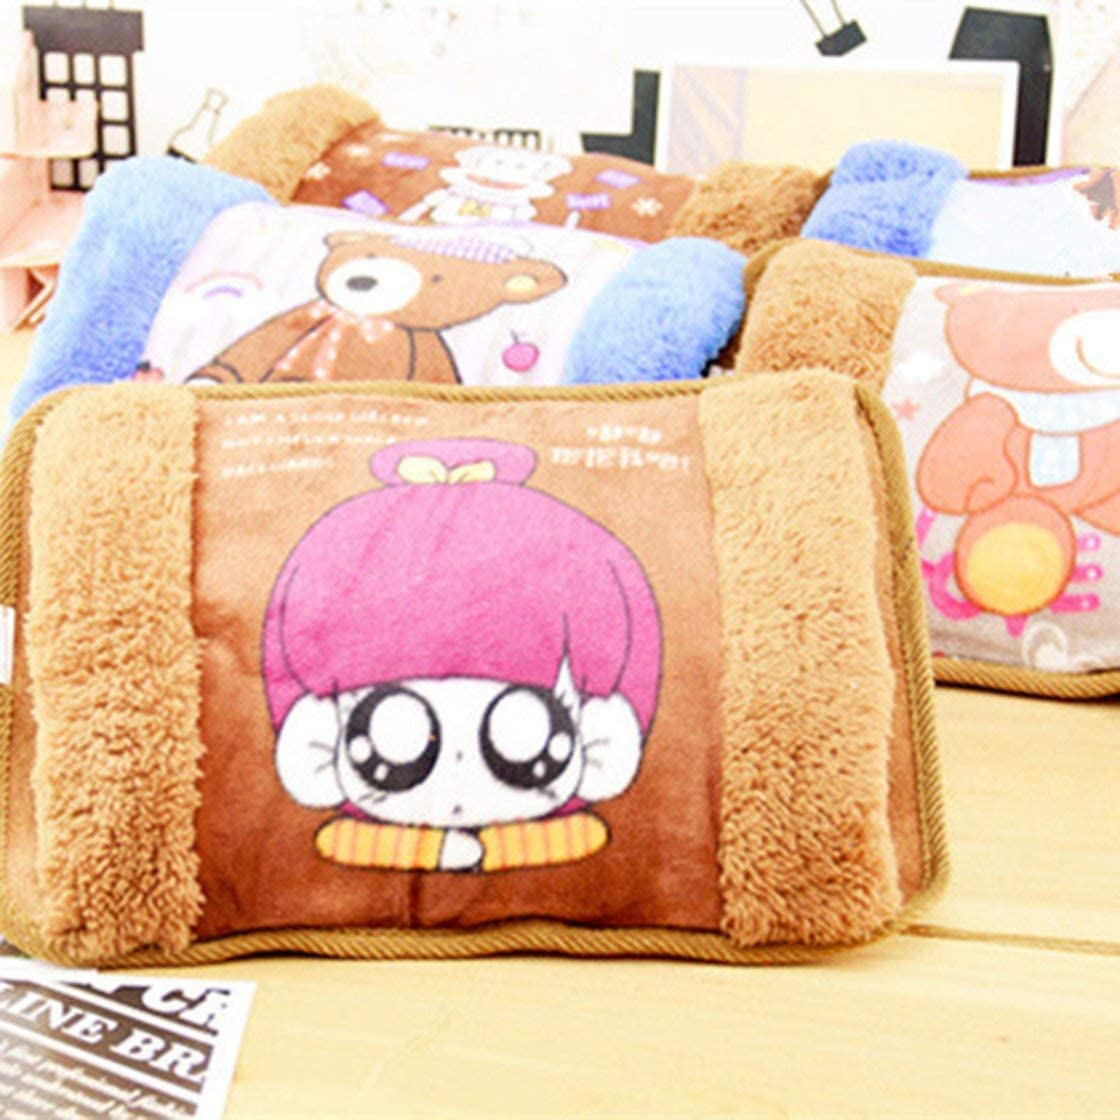 Baby Products Hot Water Bottles gaixample.org Jessicadaphne Cute ...